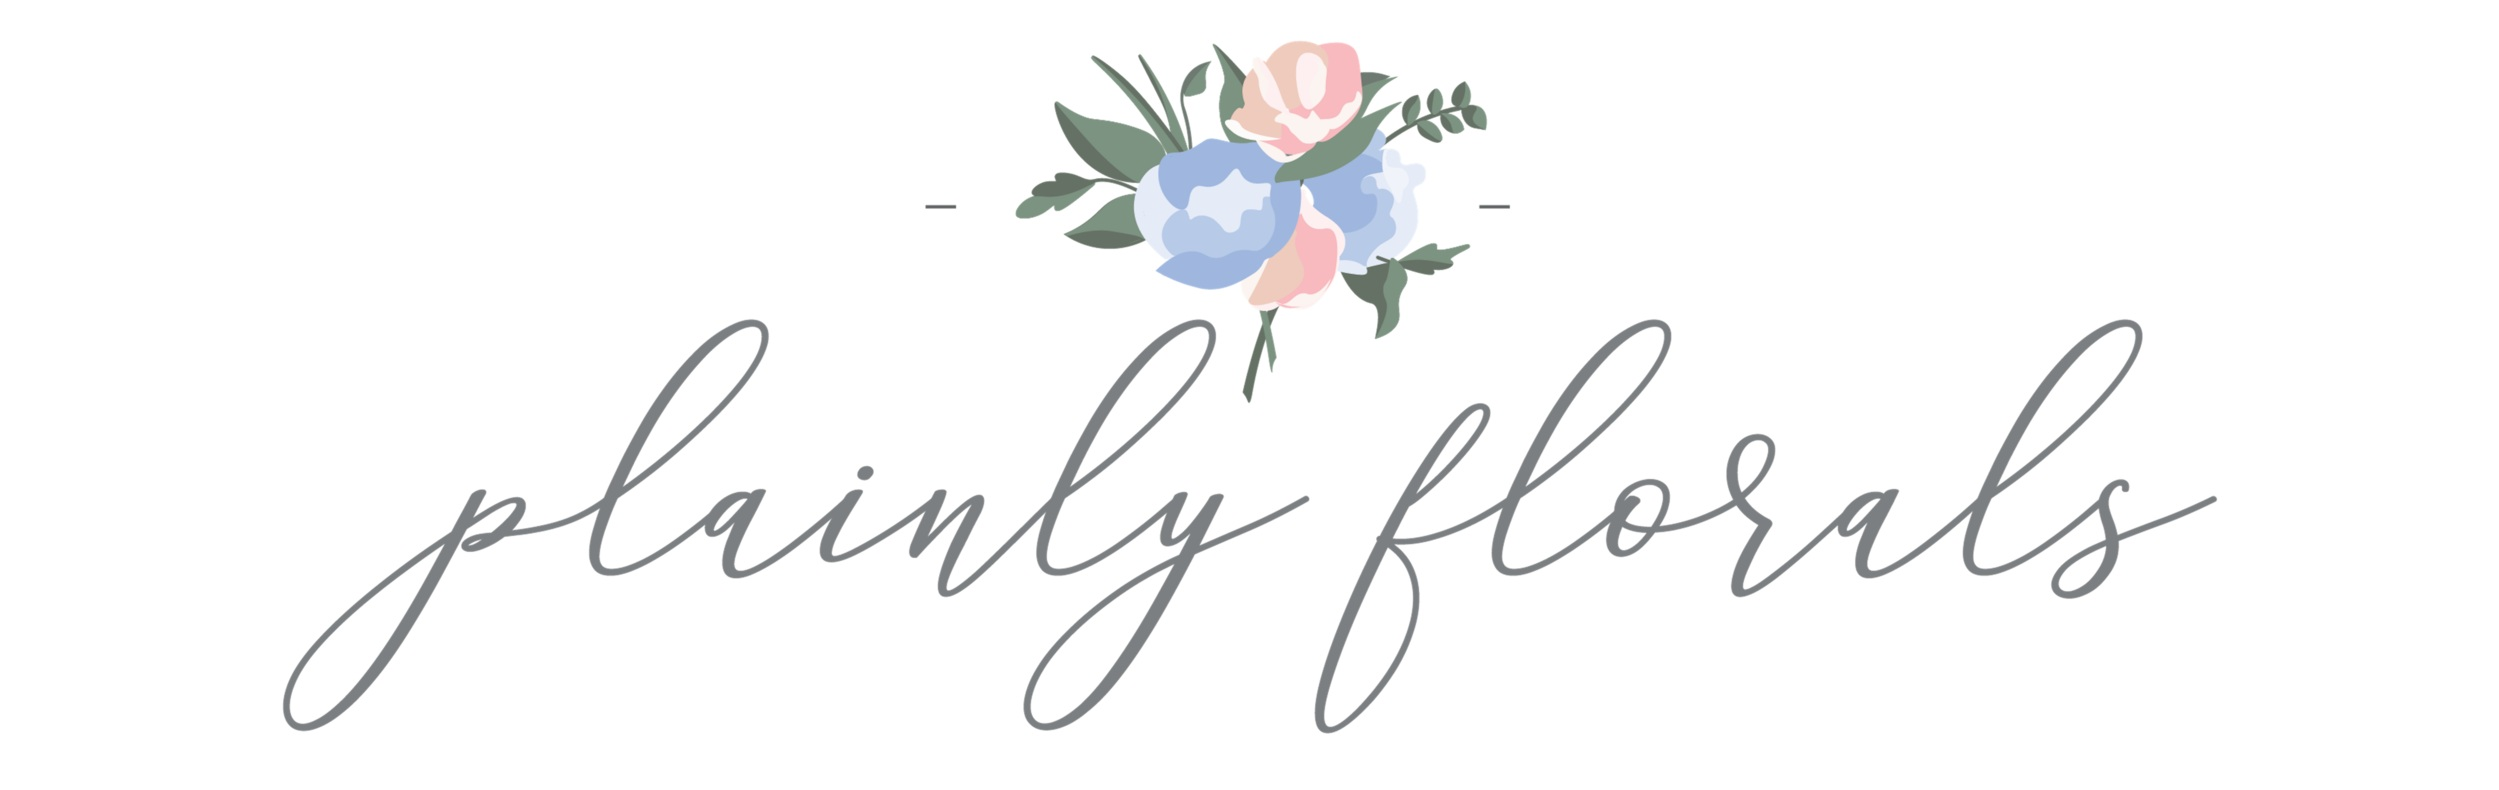 plainly+florals+logo.jpg